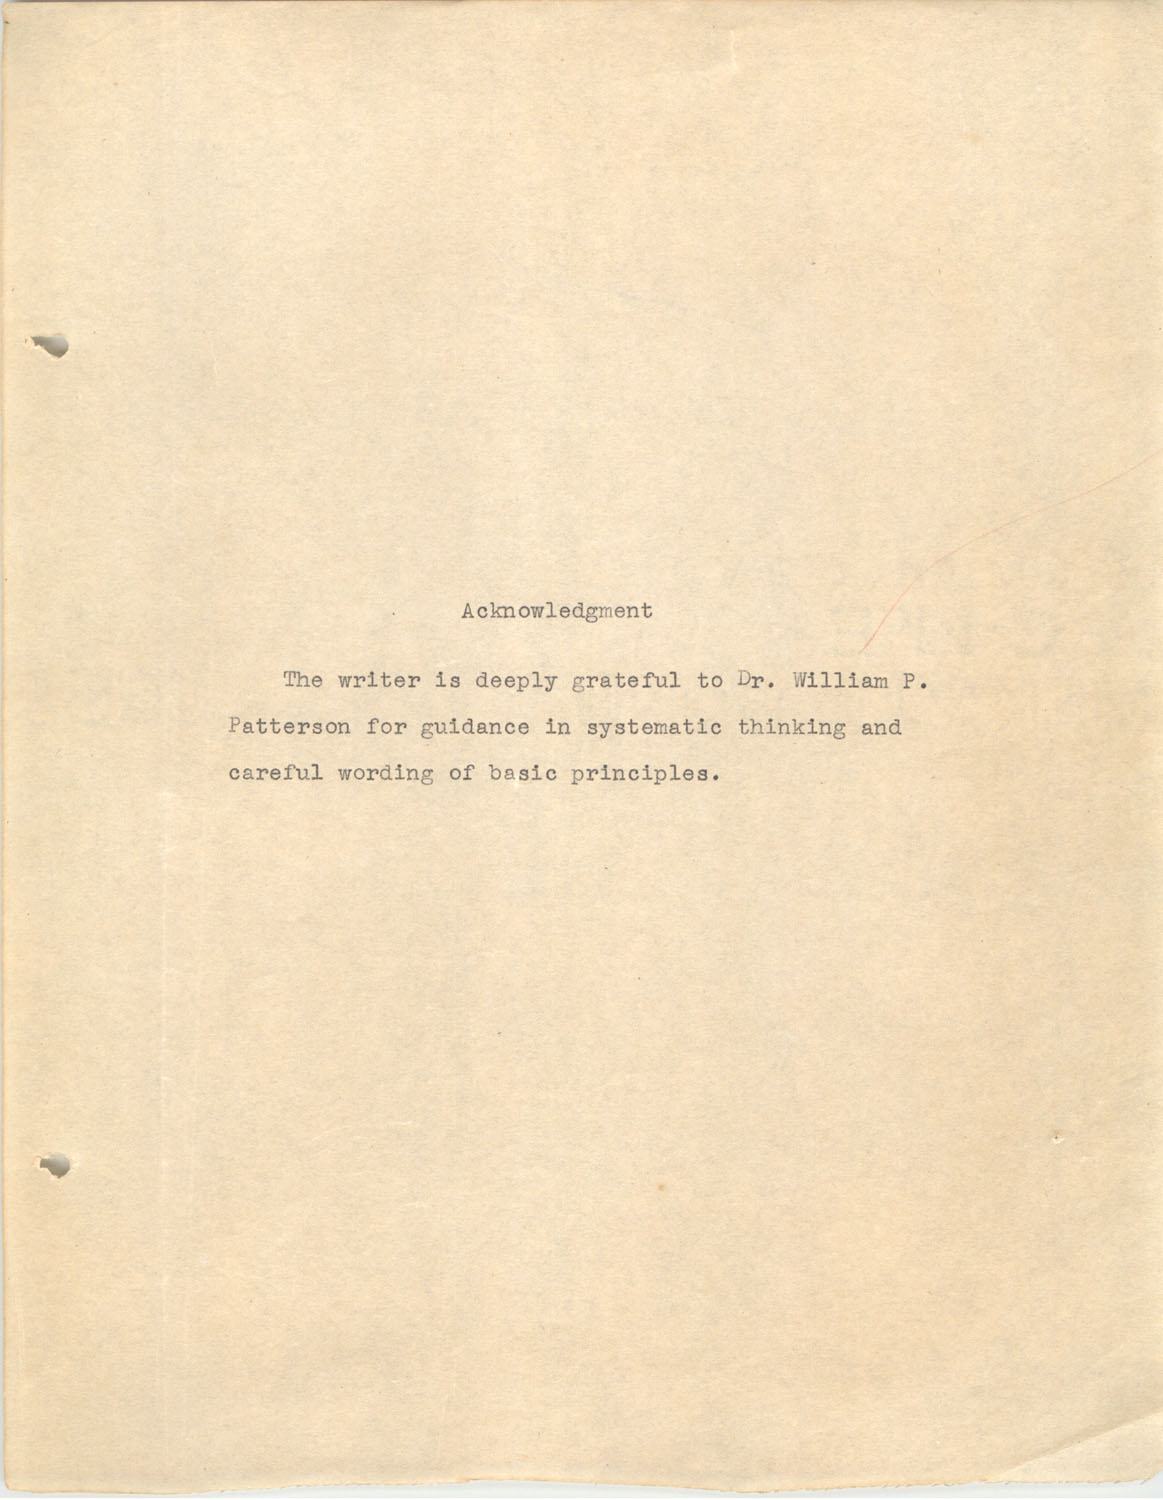 The Testing Program, 1945, Acknowledgment Page